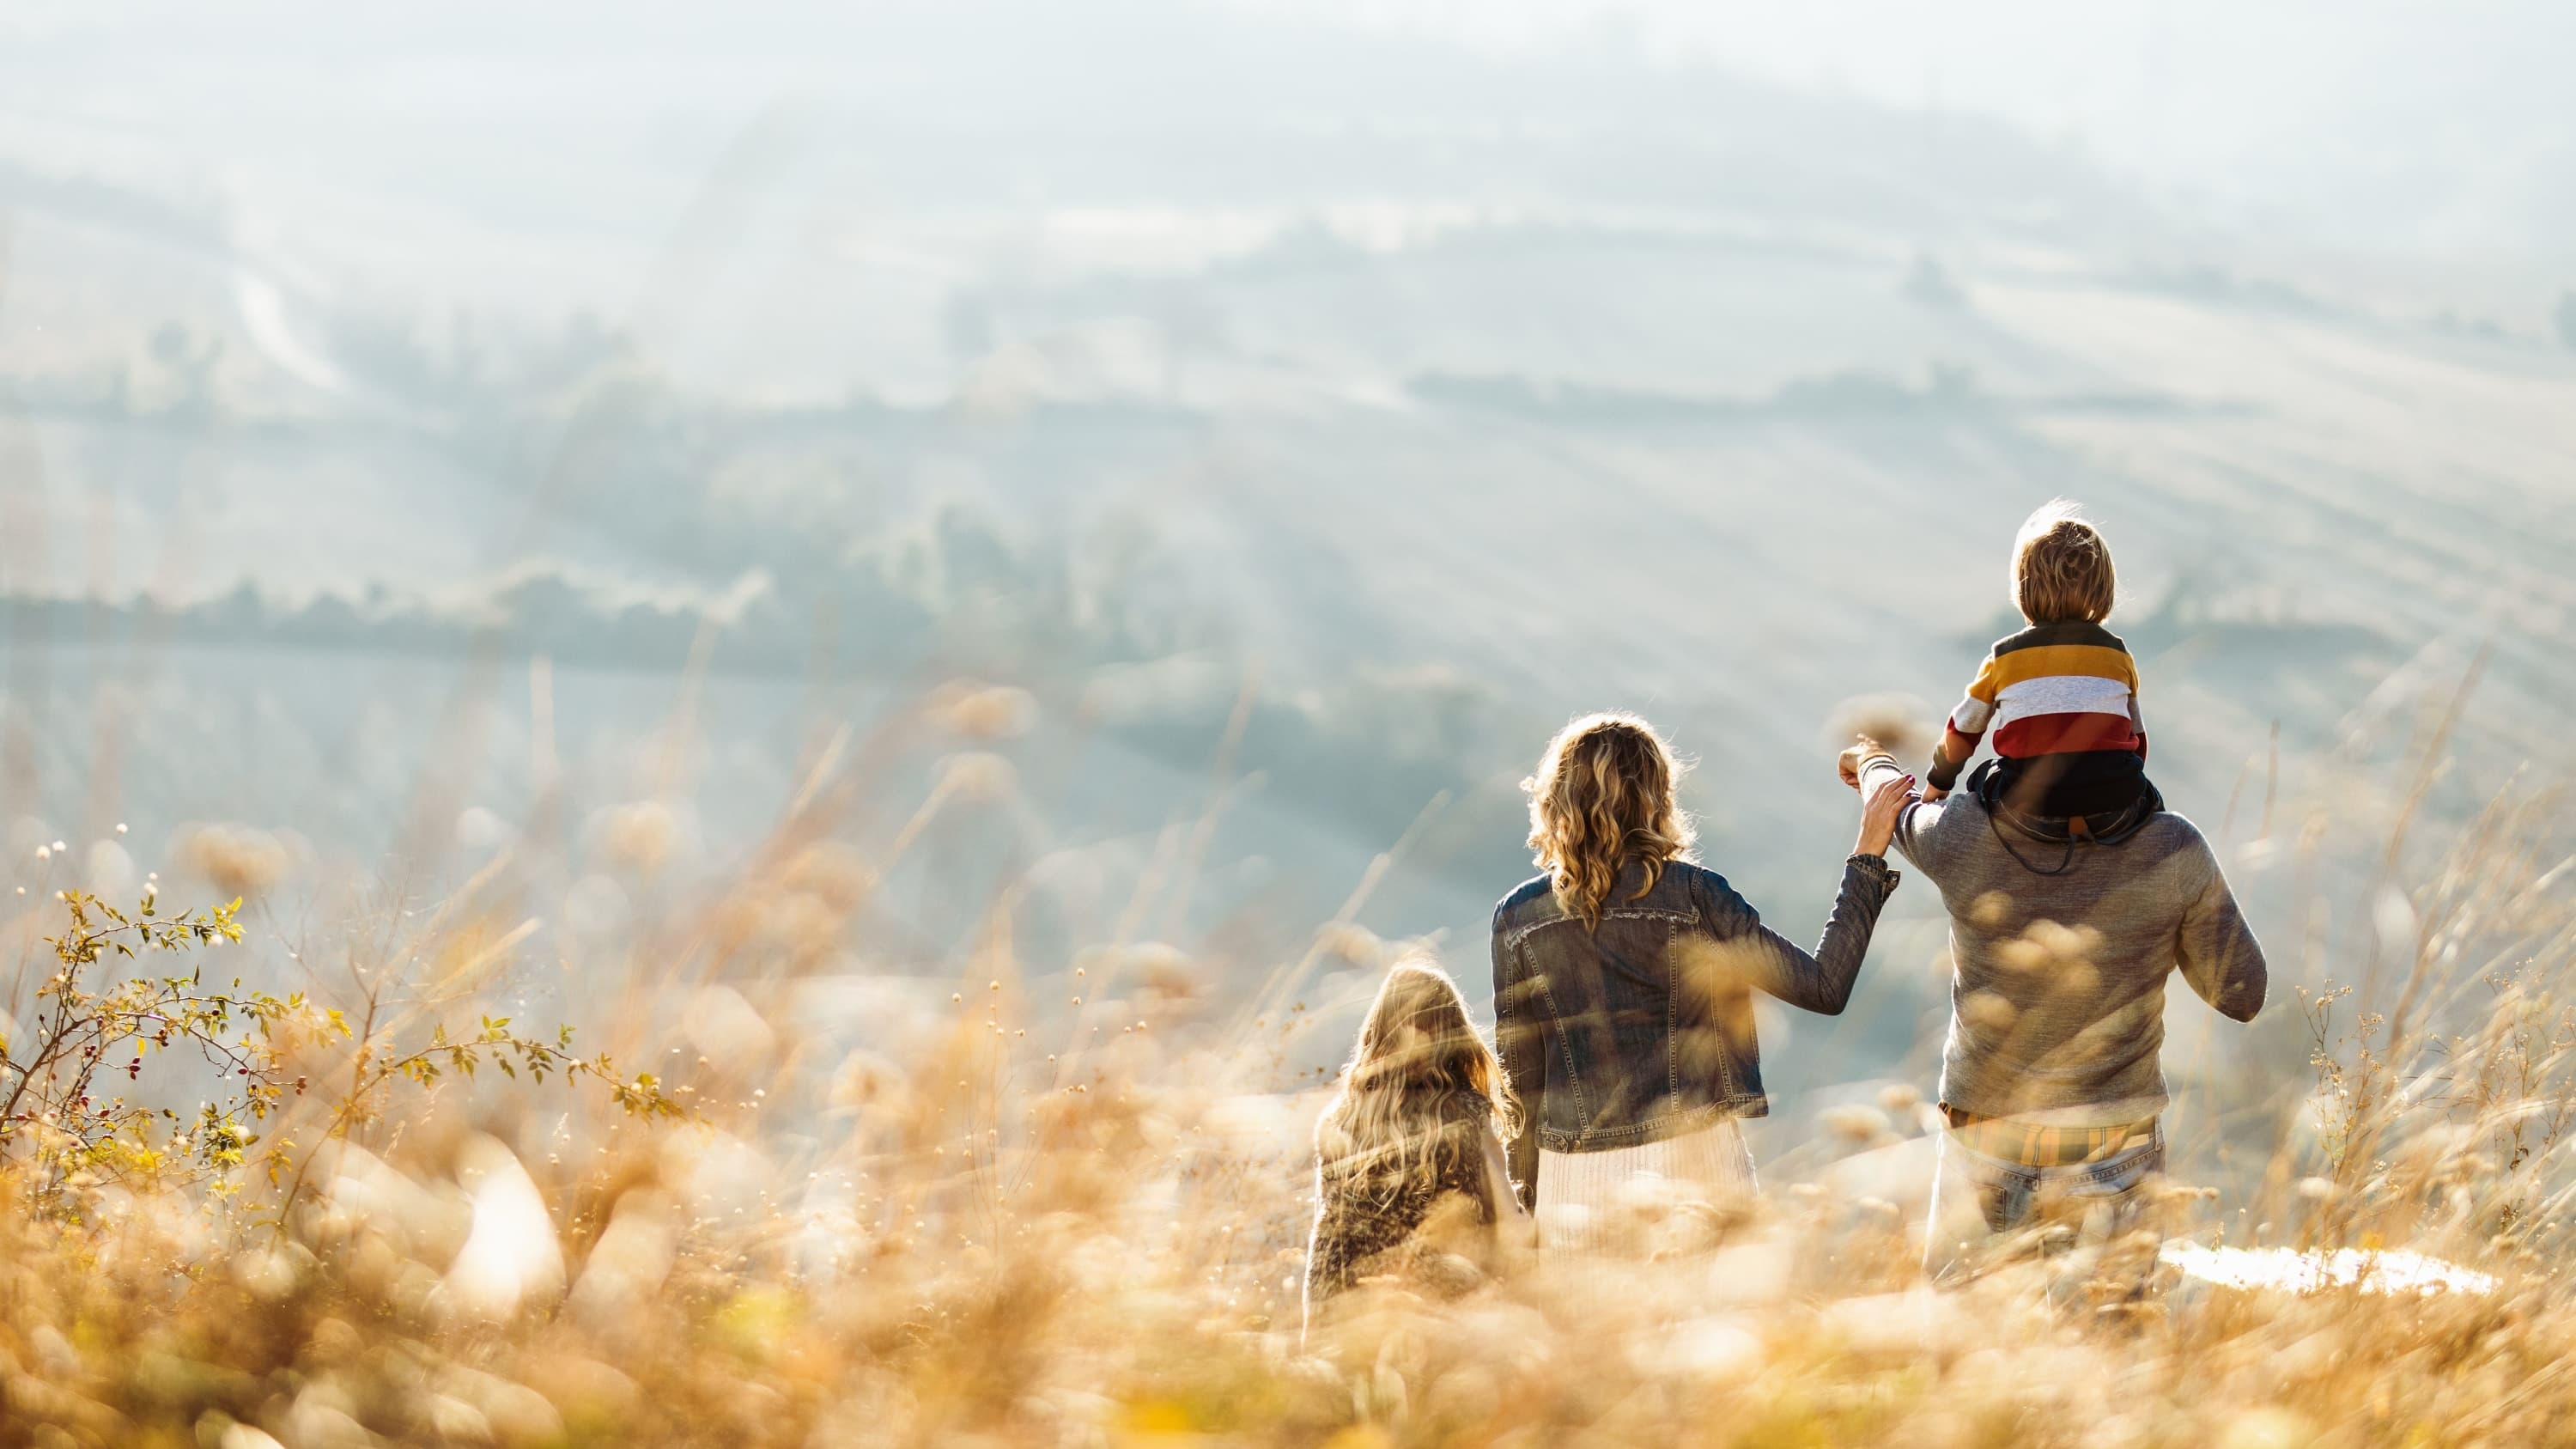 Rear view of a family standing on a hill in autumn day, symbolizing hope for the end of the COVID-19 pandemic